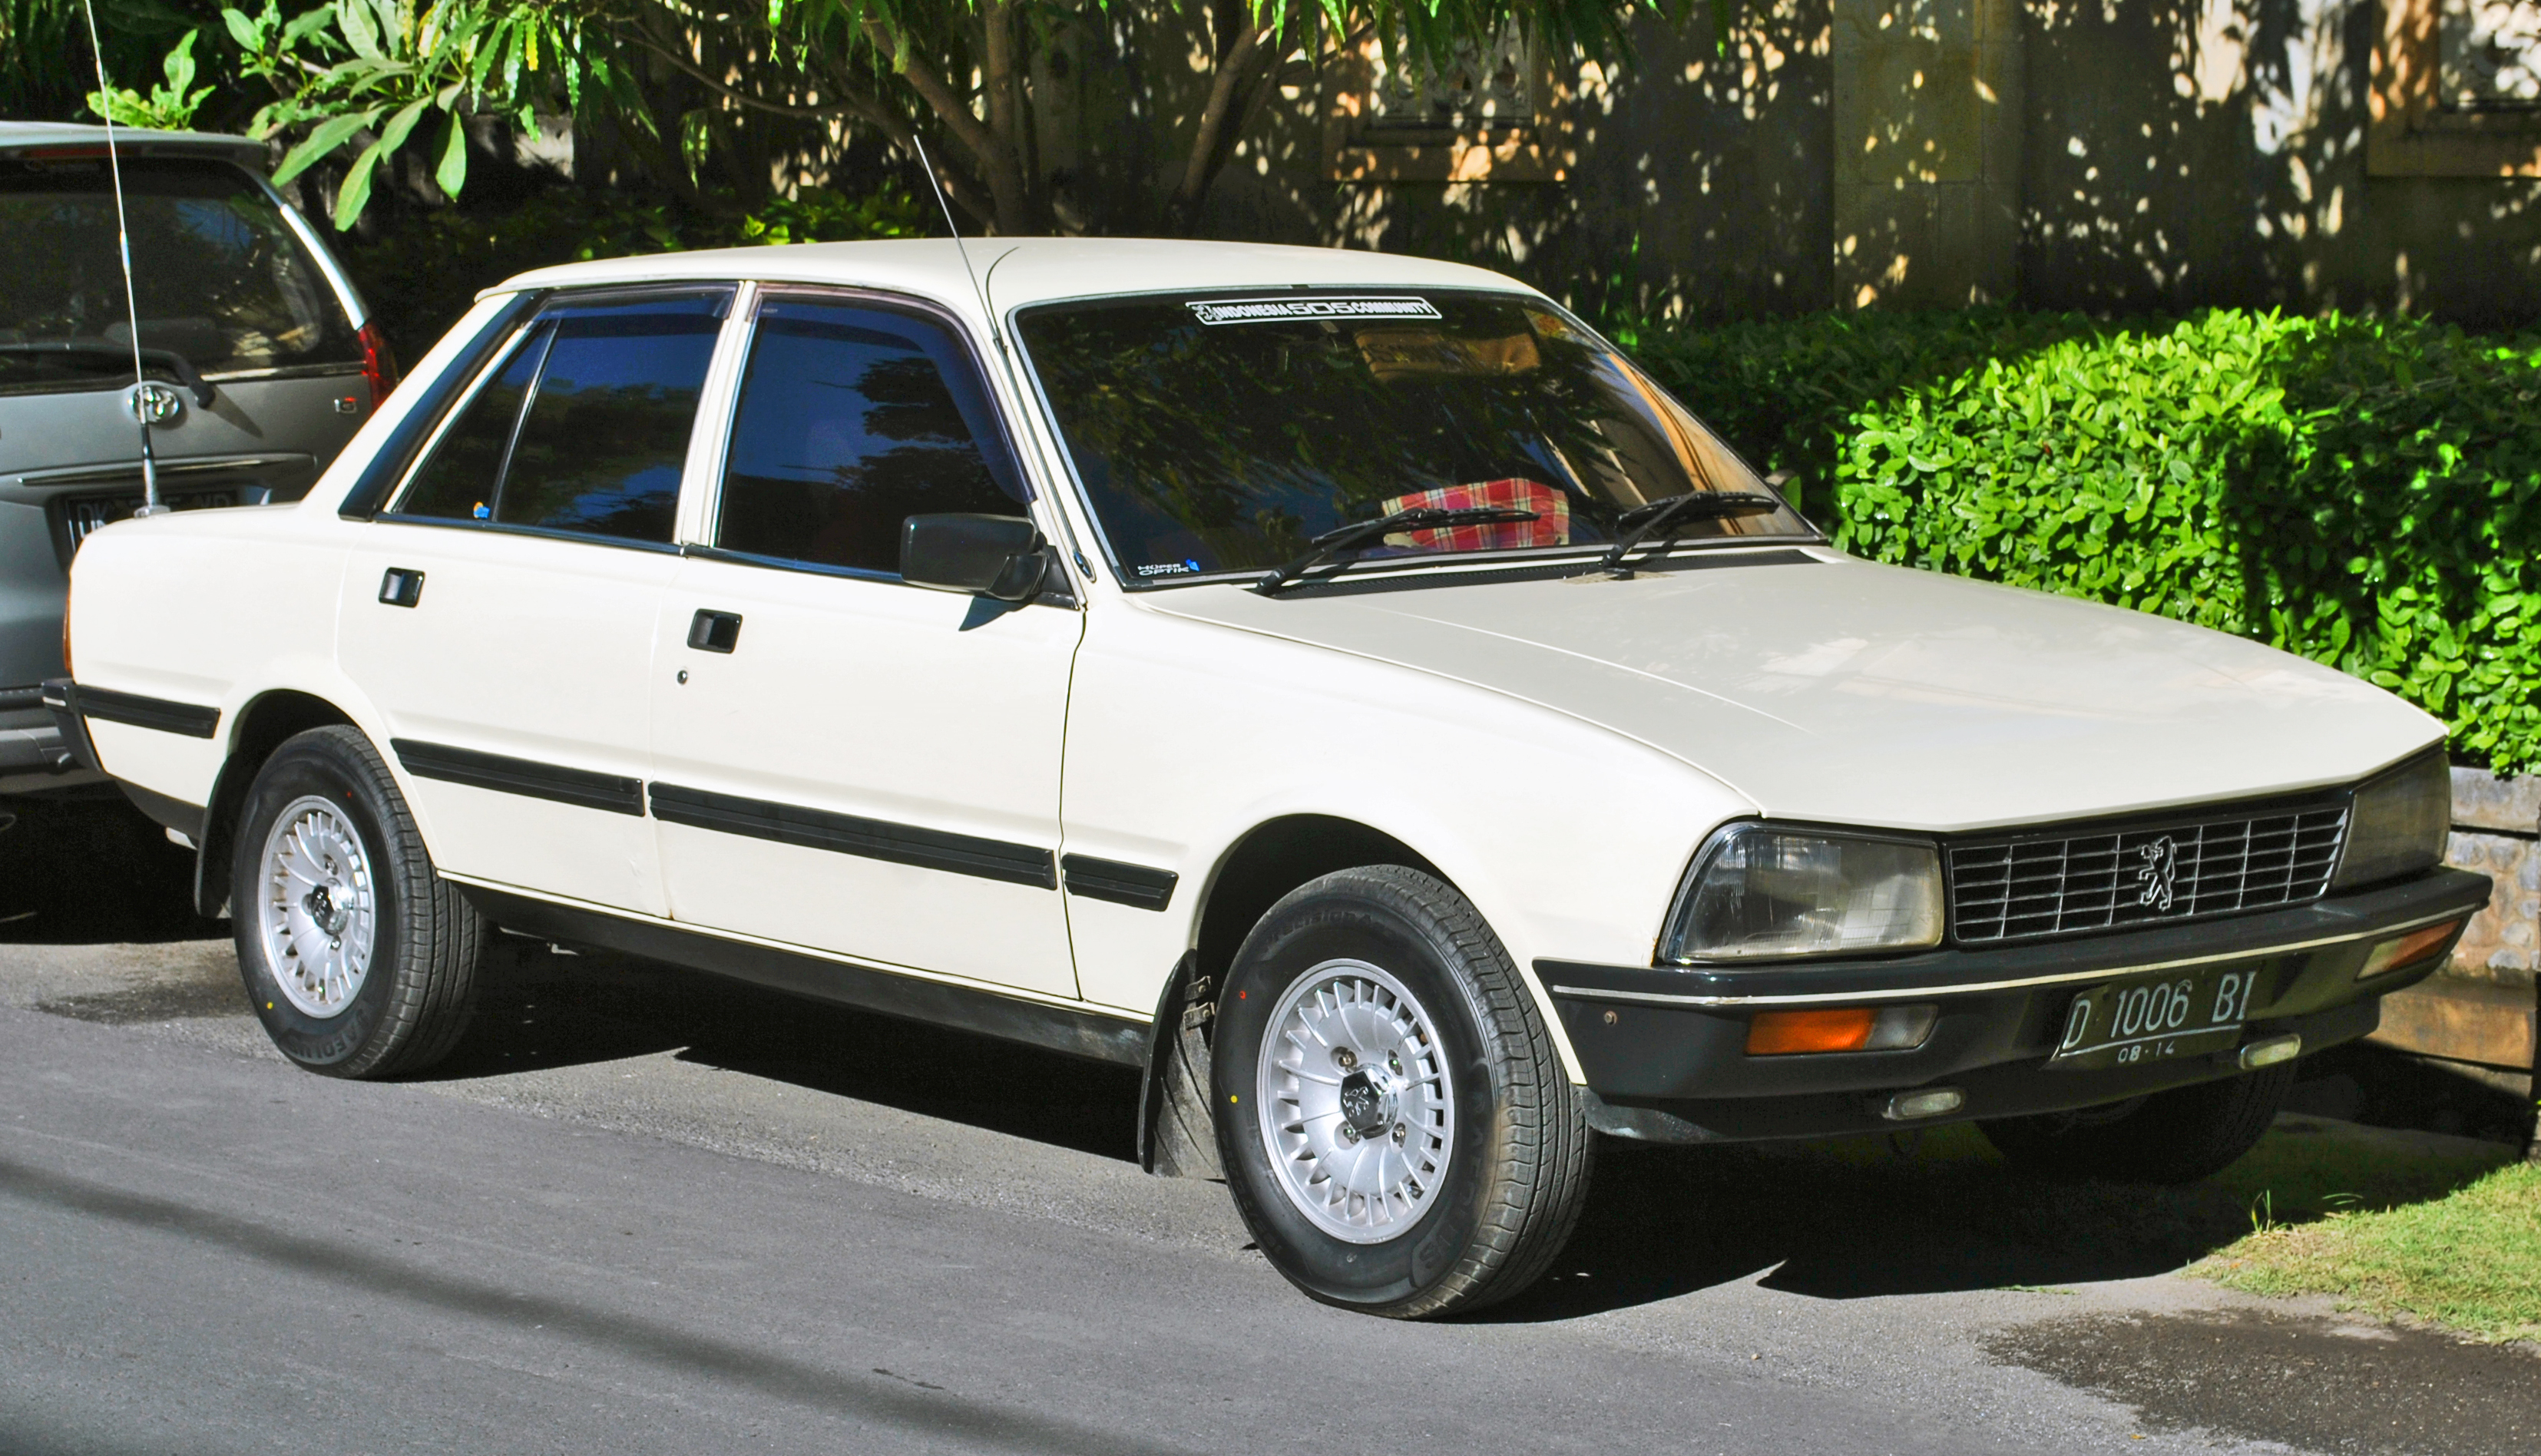 file:peugeot 505 gr front side, denpasar - wikimedia commons